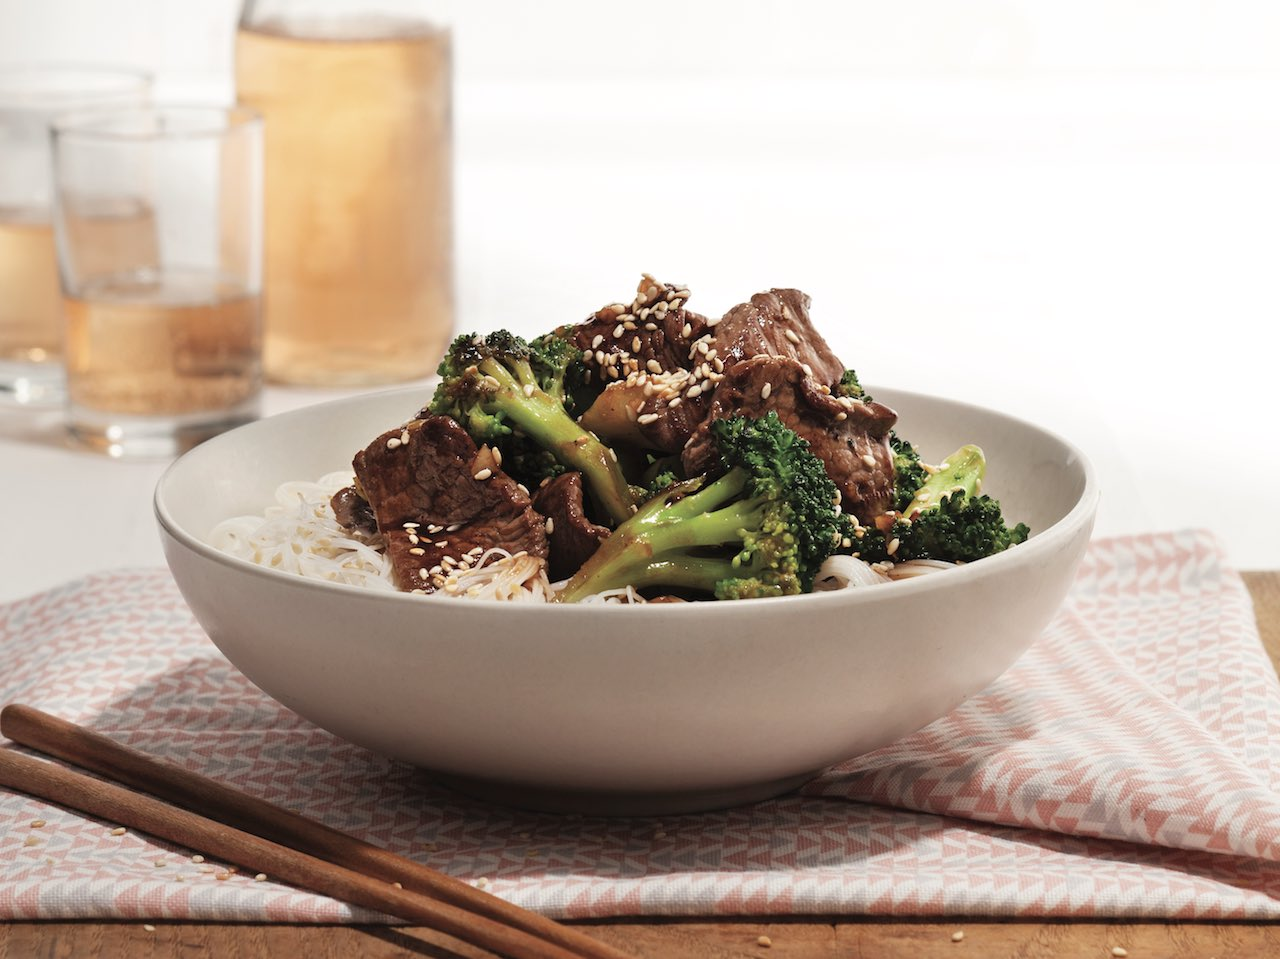 Vermicelli bowl with sesame beef and broccoli